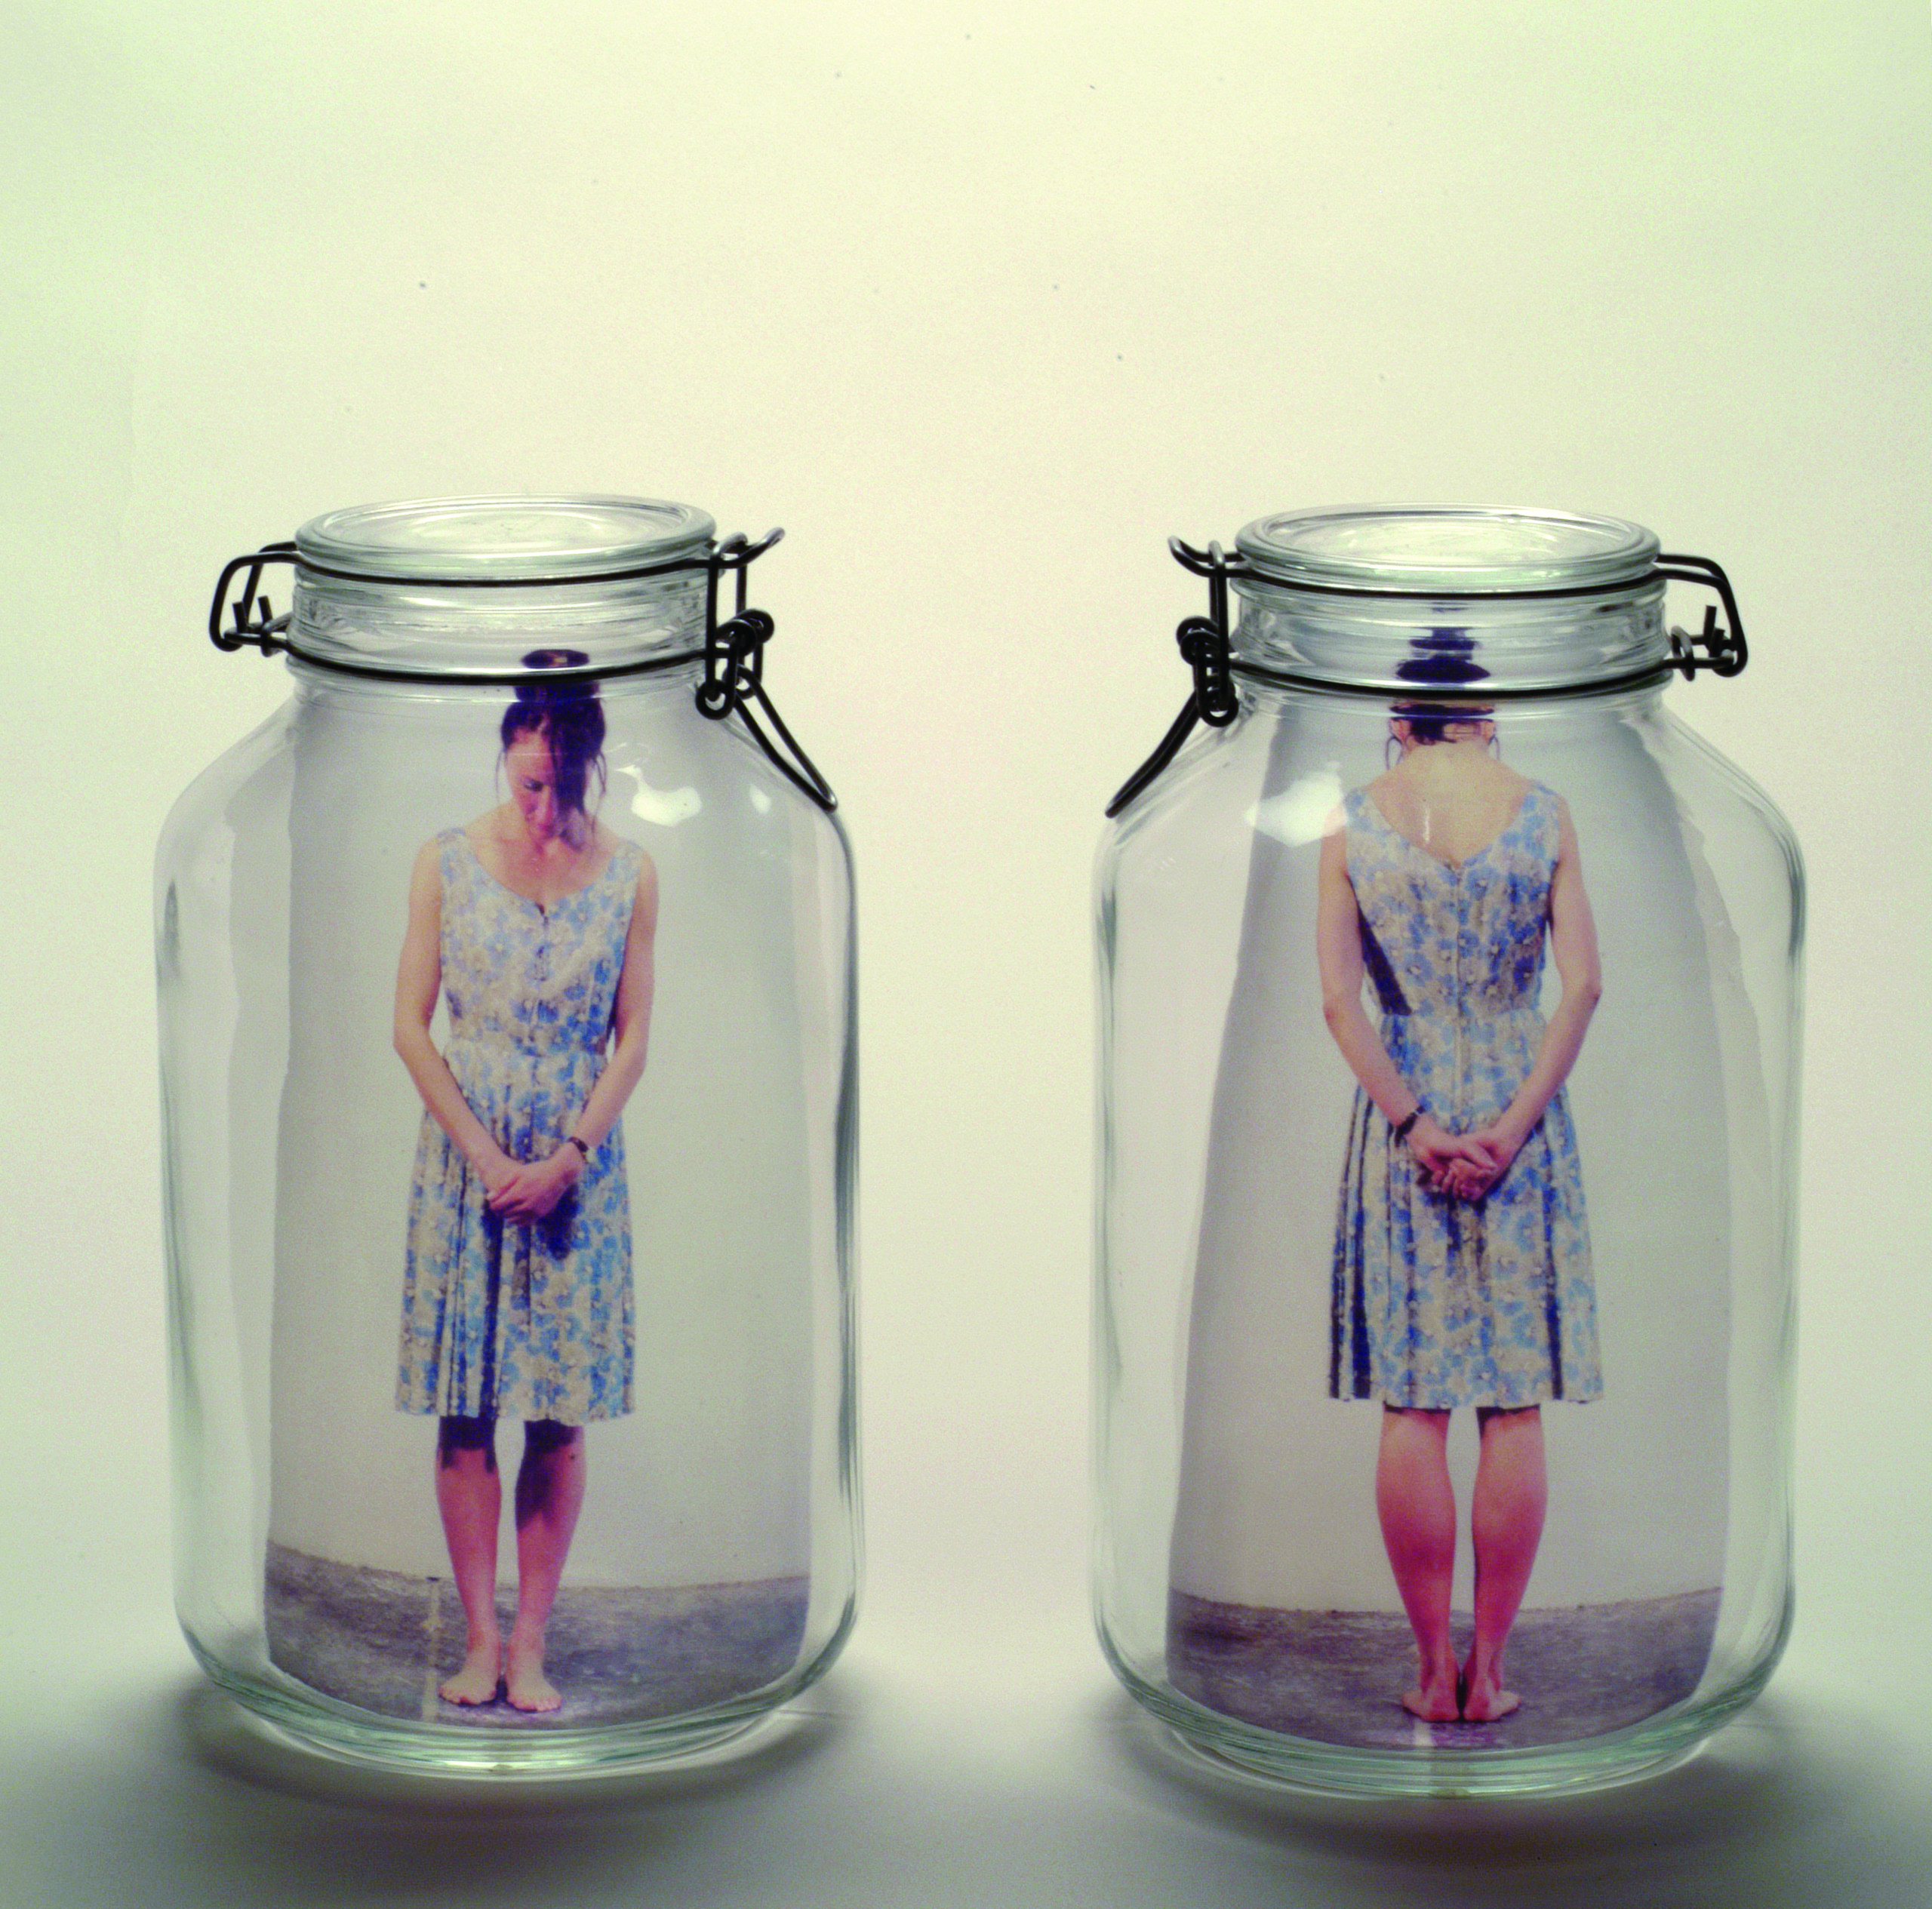 Two clear glass mason jars side by side. In the left jar is a color photograph of a light skinned woman standing with head bent and hands clasped in front of her. In the right jar is the same woman seen from rear with hands clasped behind her.